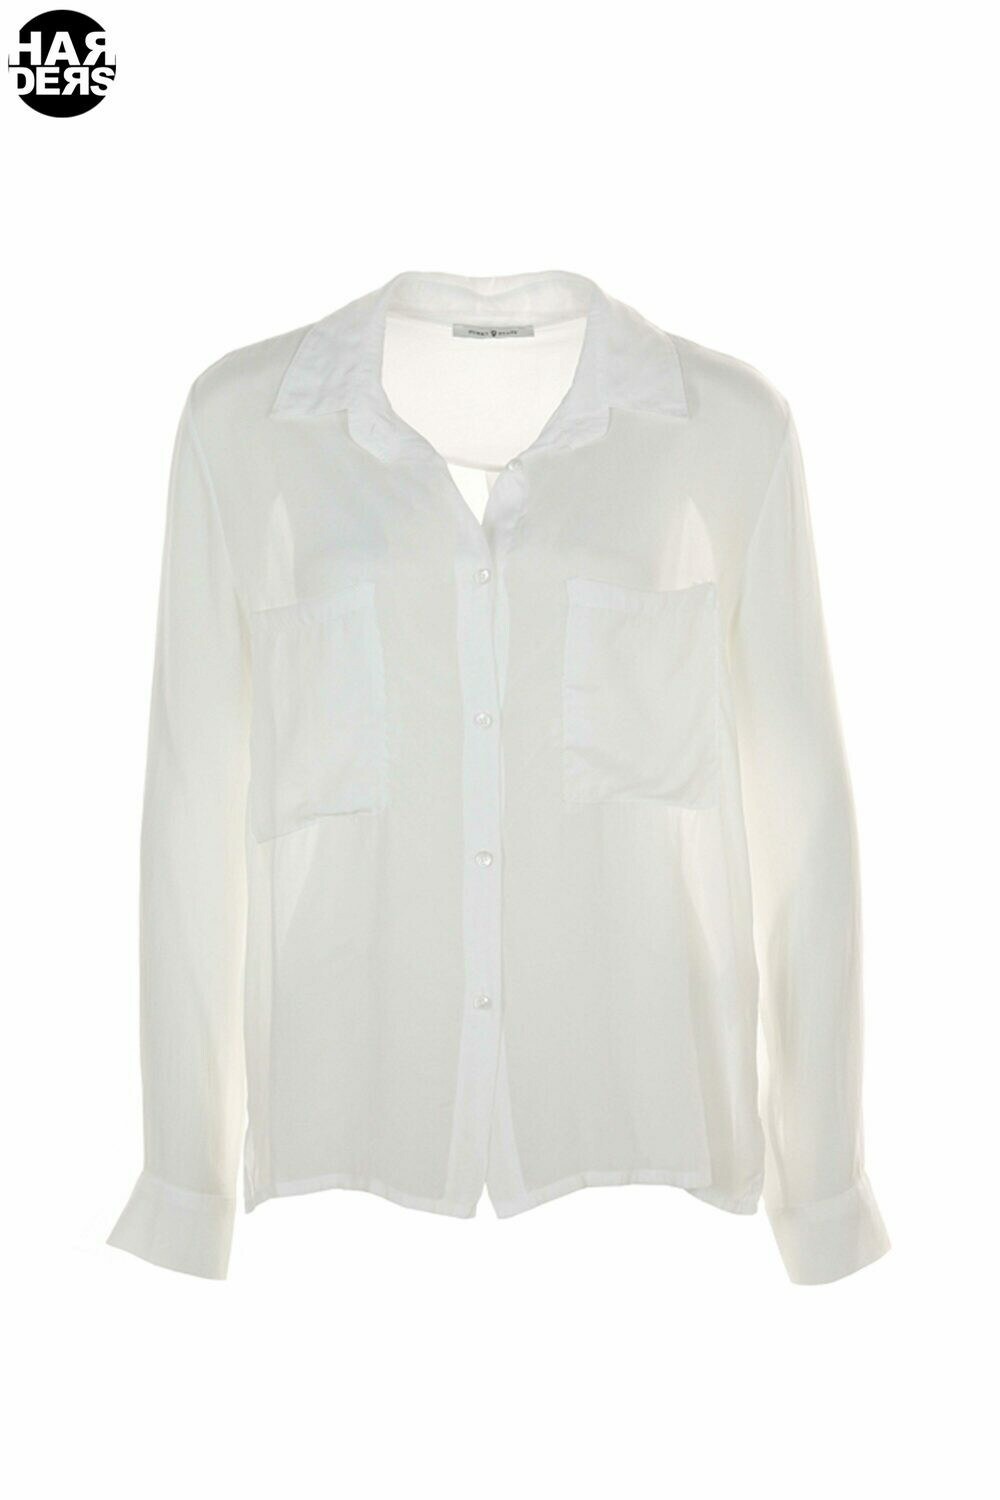 Funky Staff BLUSE ANABELLE SOFTWEAR